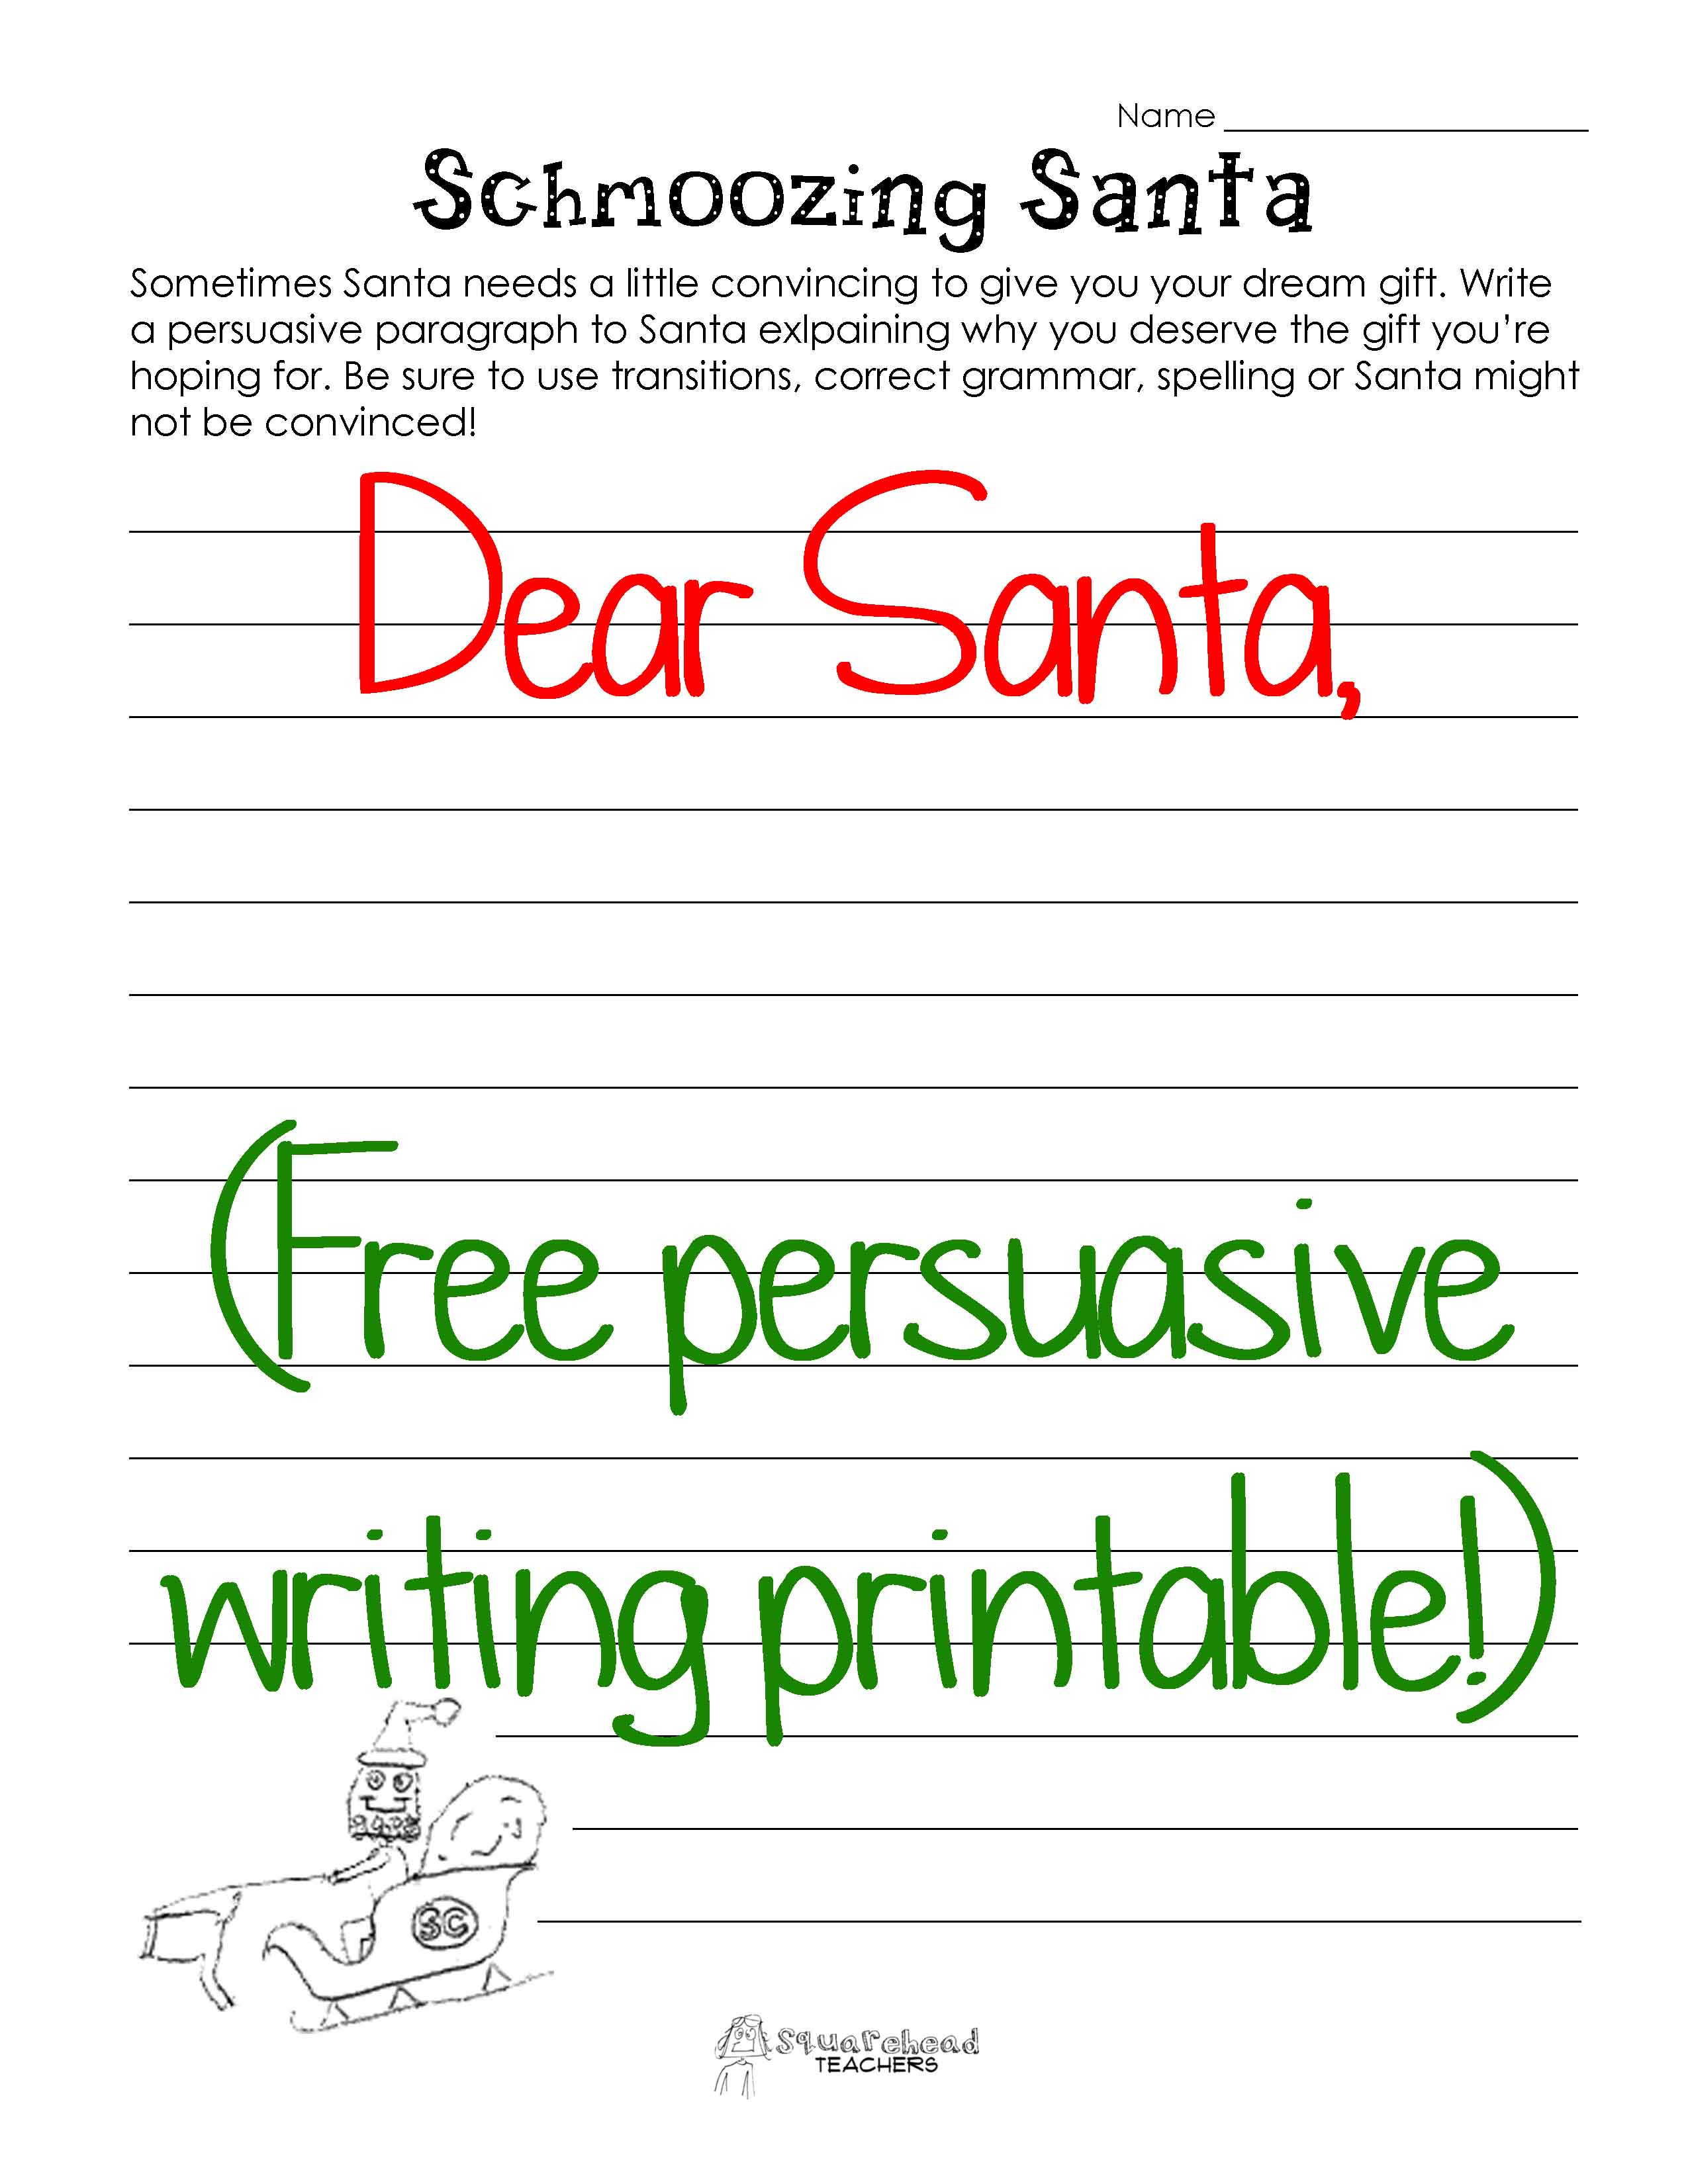 Schmoozing Santa Persuasive Writing  Squarehead Teachers